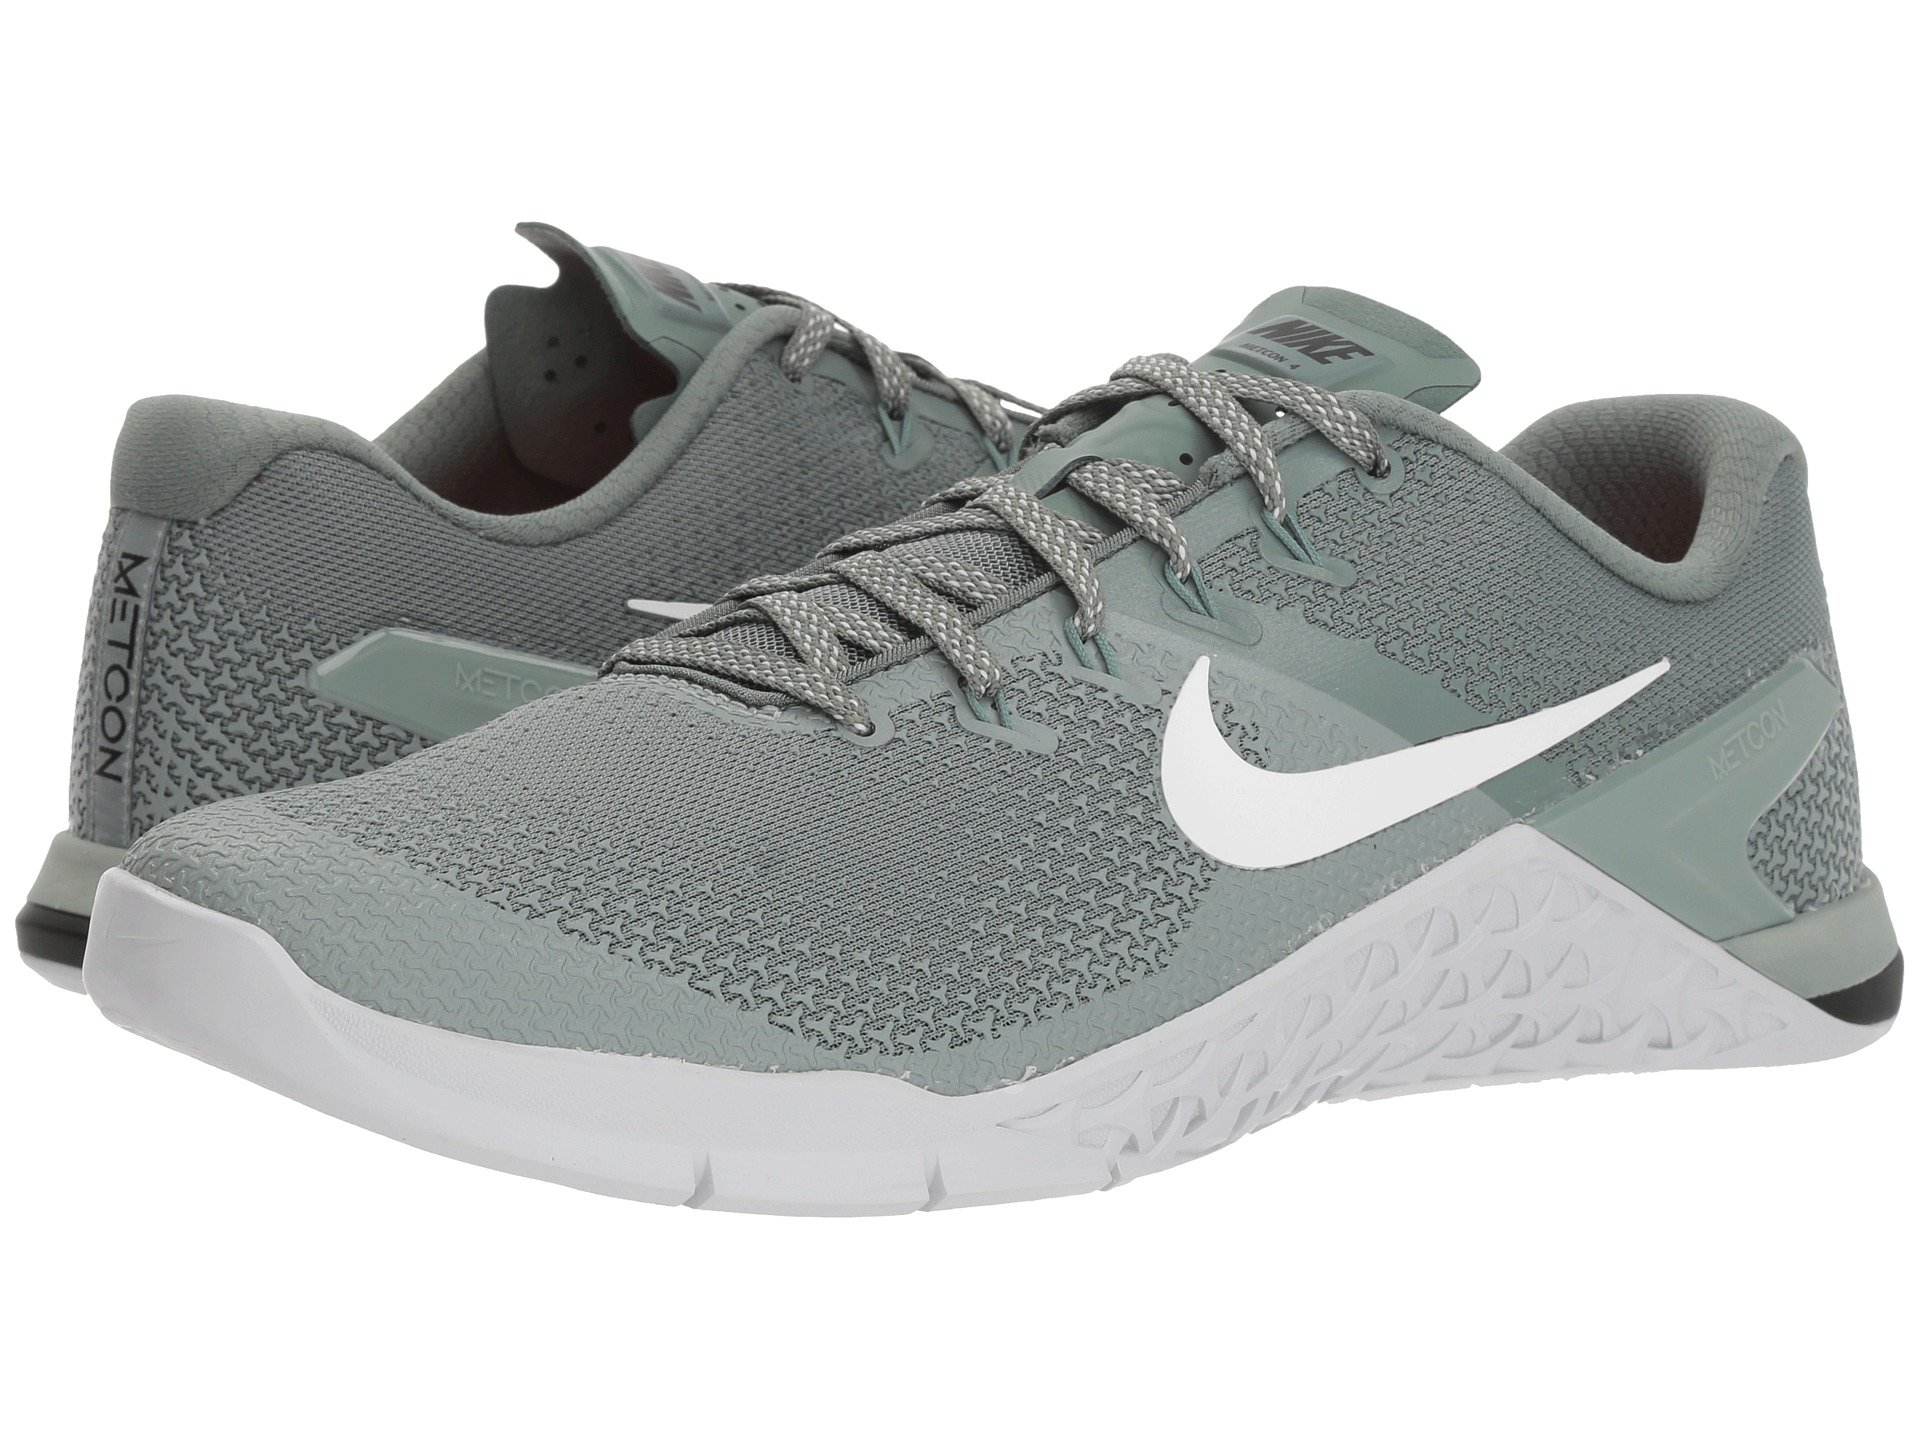 6486e983cf19 Nike roshe shoes  nike air max thea. Awesome selection latest prices  special offers find the best deal. Shop the simple